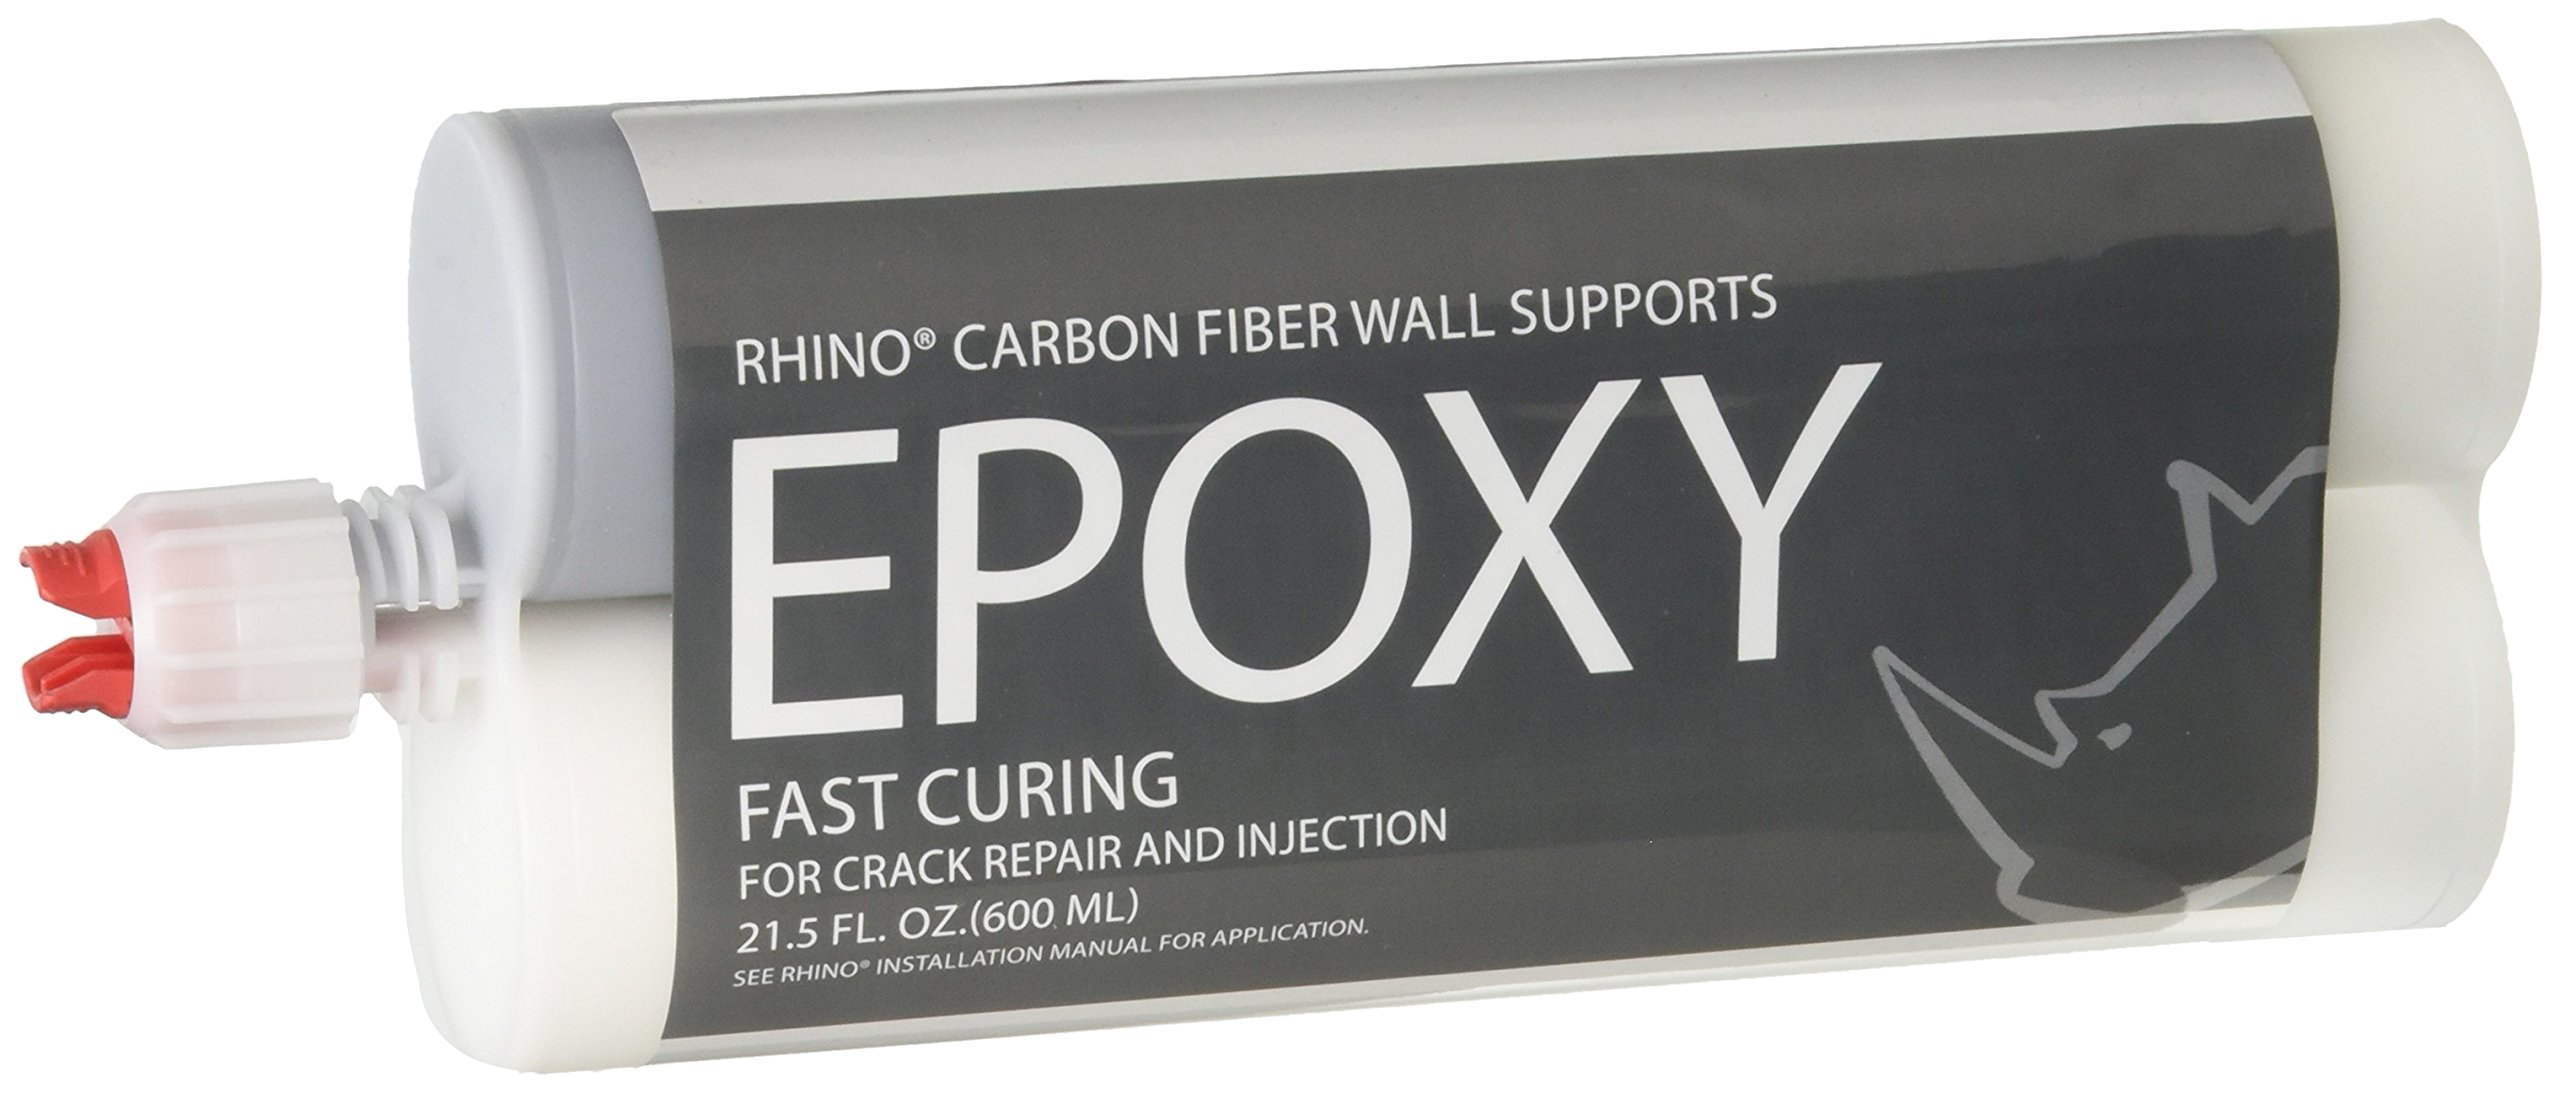 Adhesive Fast Curing Epoxy- for Crack Repair (6 Pack)